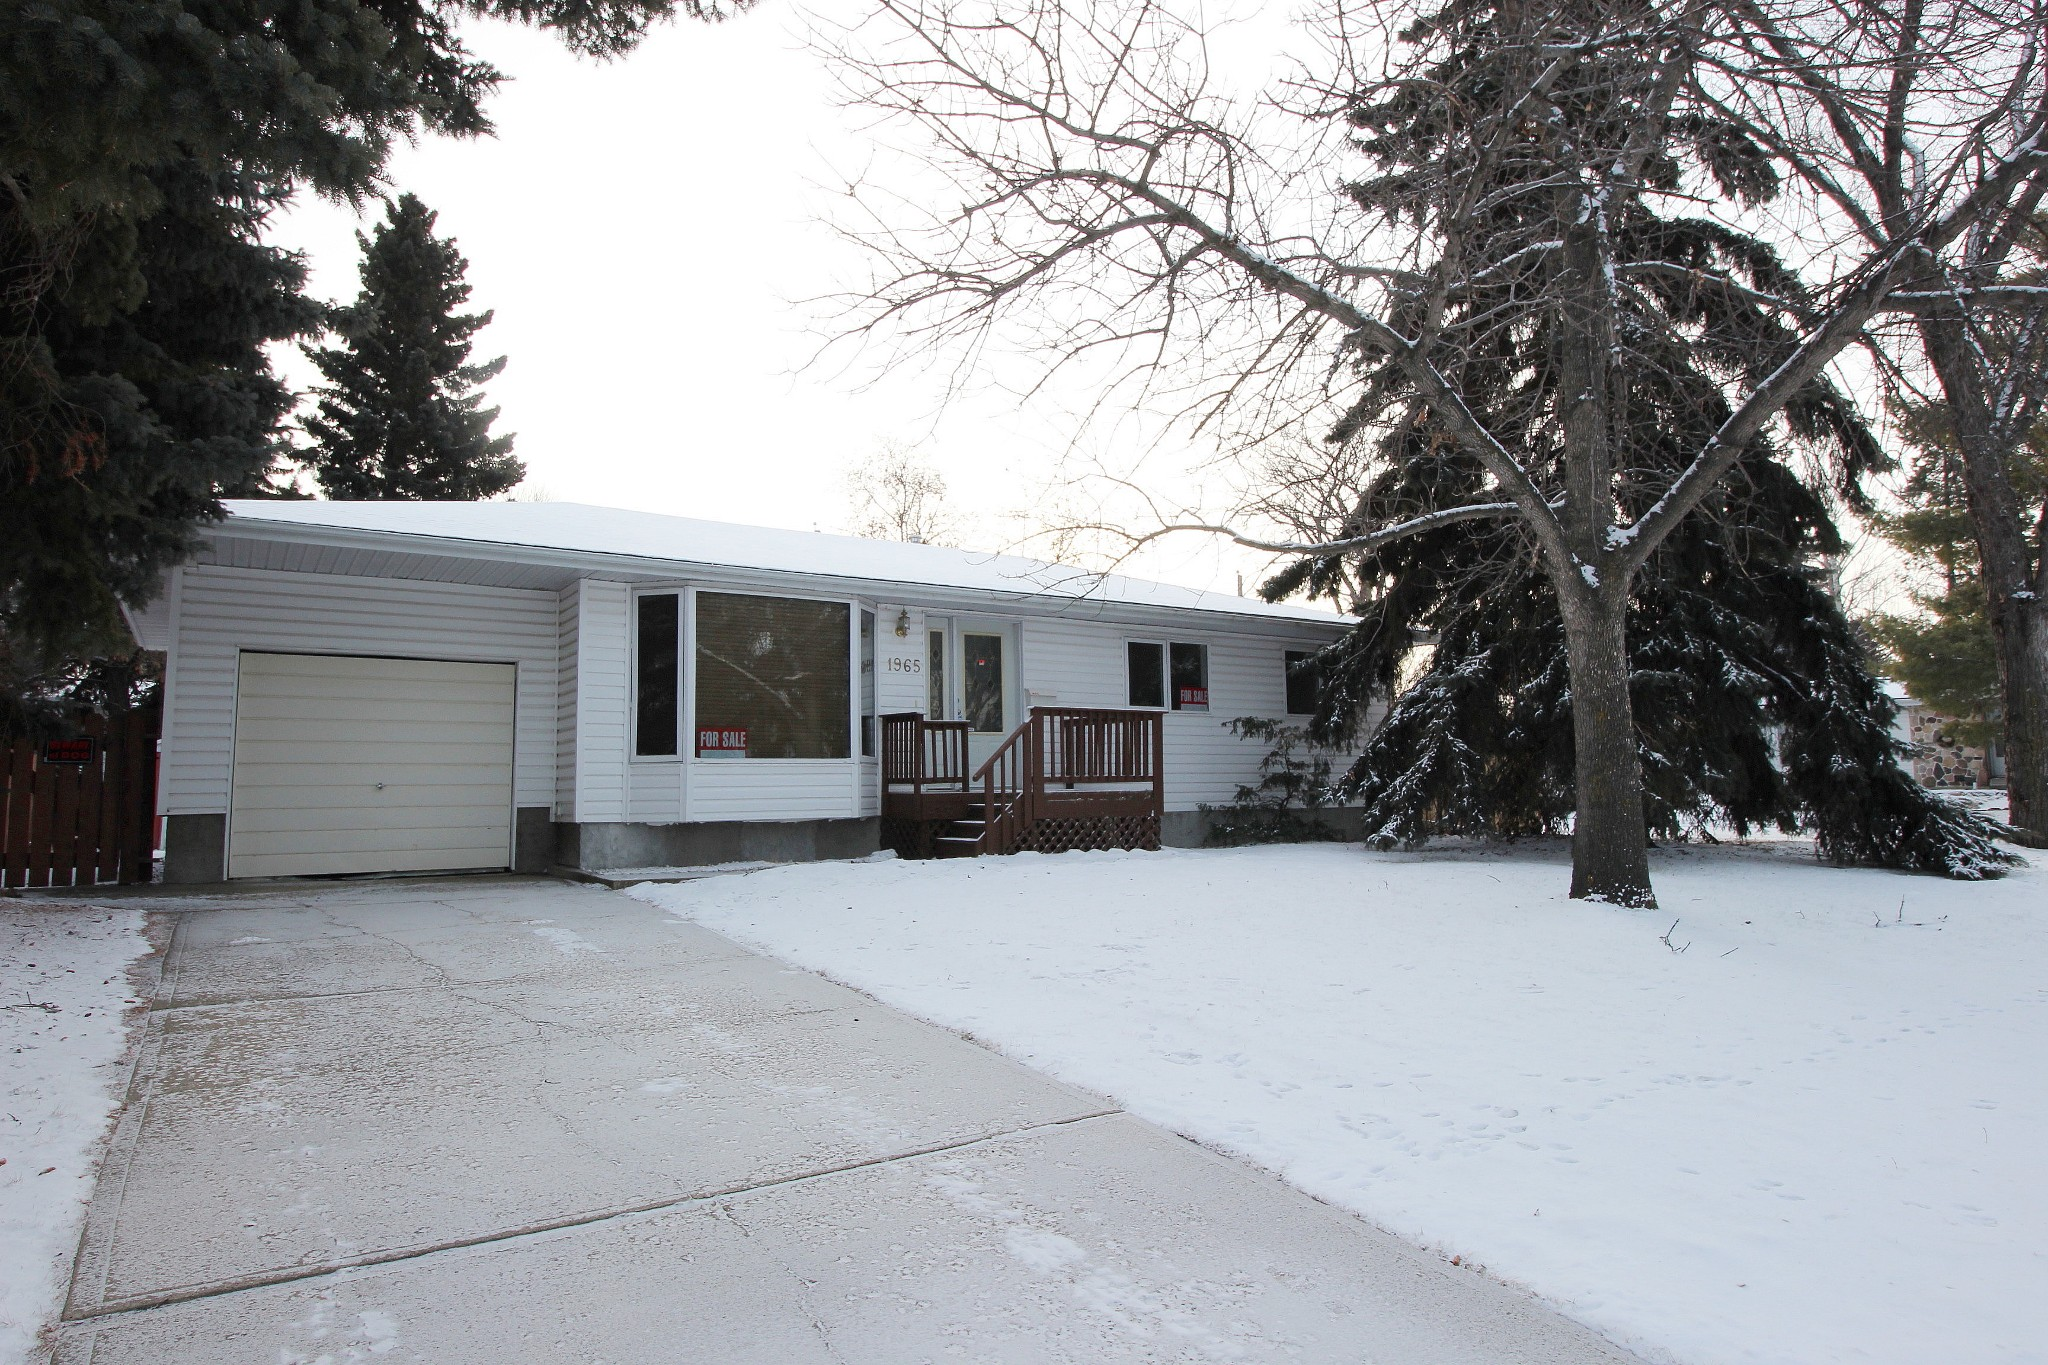 Main Photo: 1965 Glenmore Avenue in Edmonton: House for sale